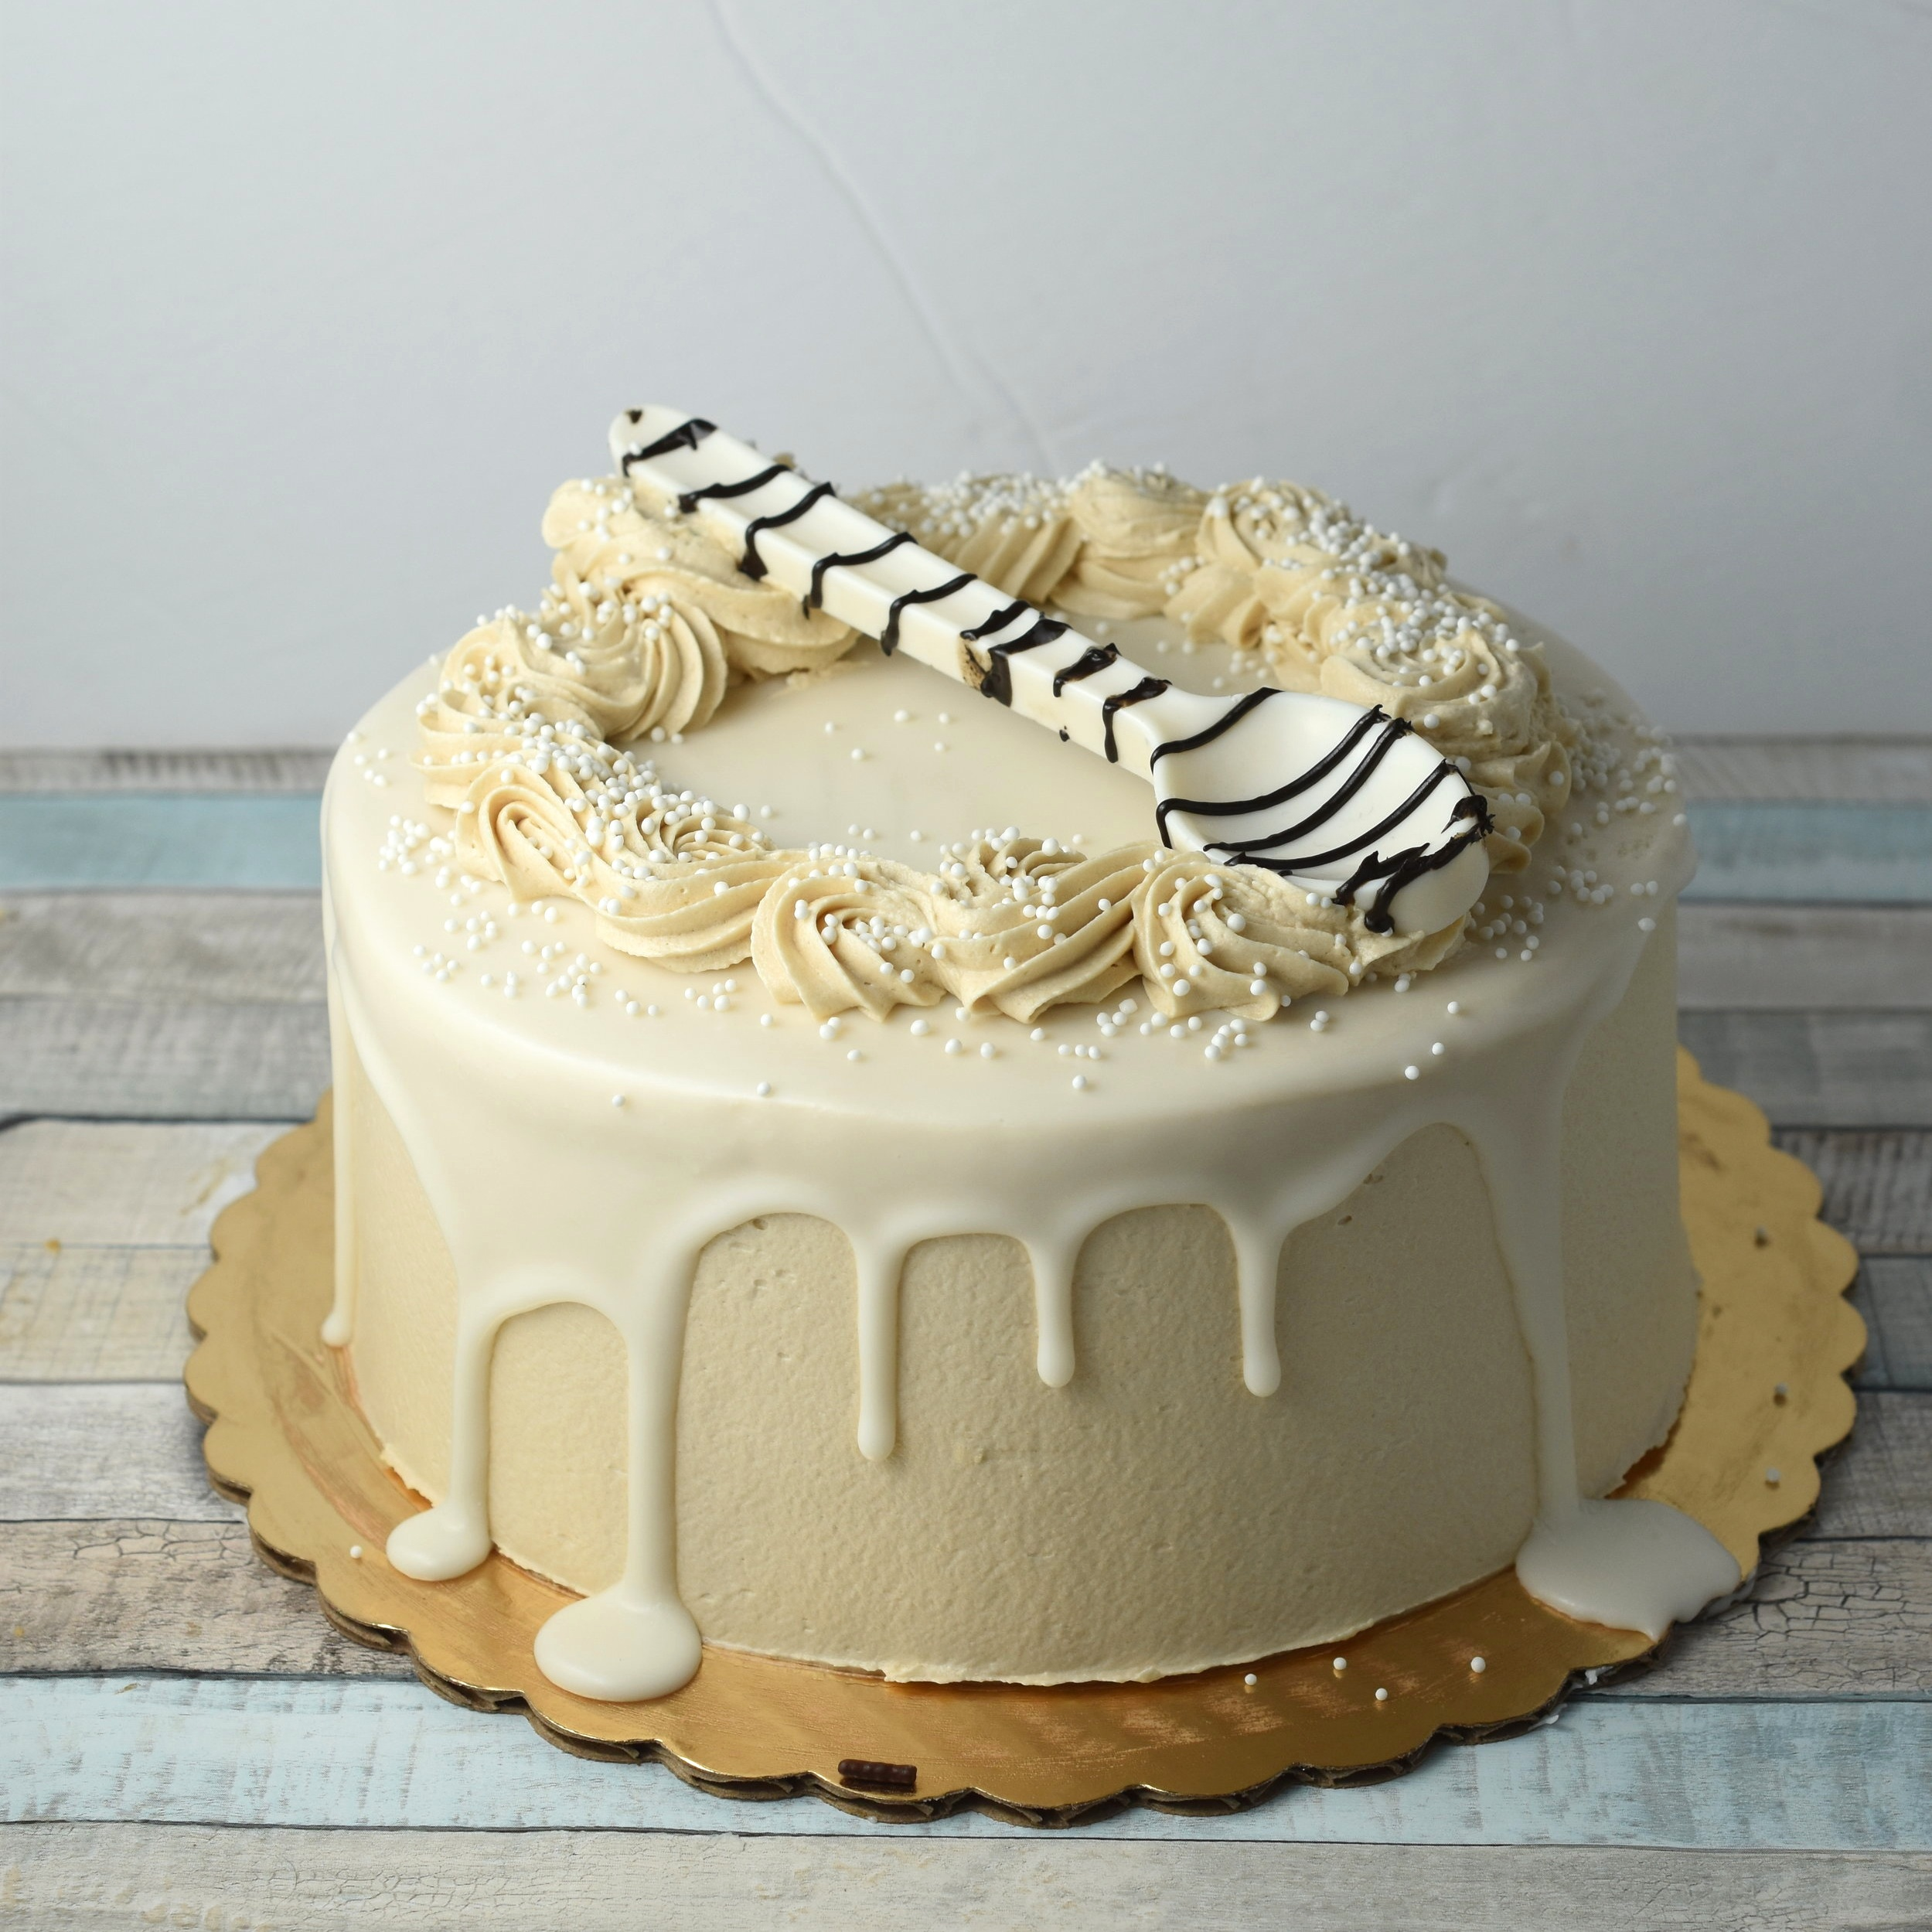 White MOcha - This combo is sure to get you buzzing! White chocolate ganache fills vanilla layers, which are covered in a sweet and satisfying coffee buttercream.